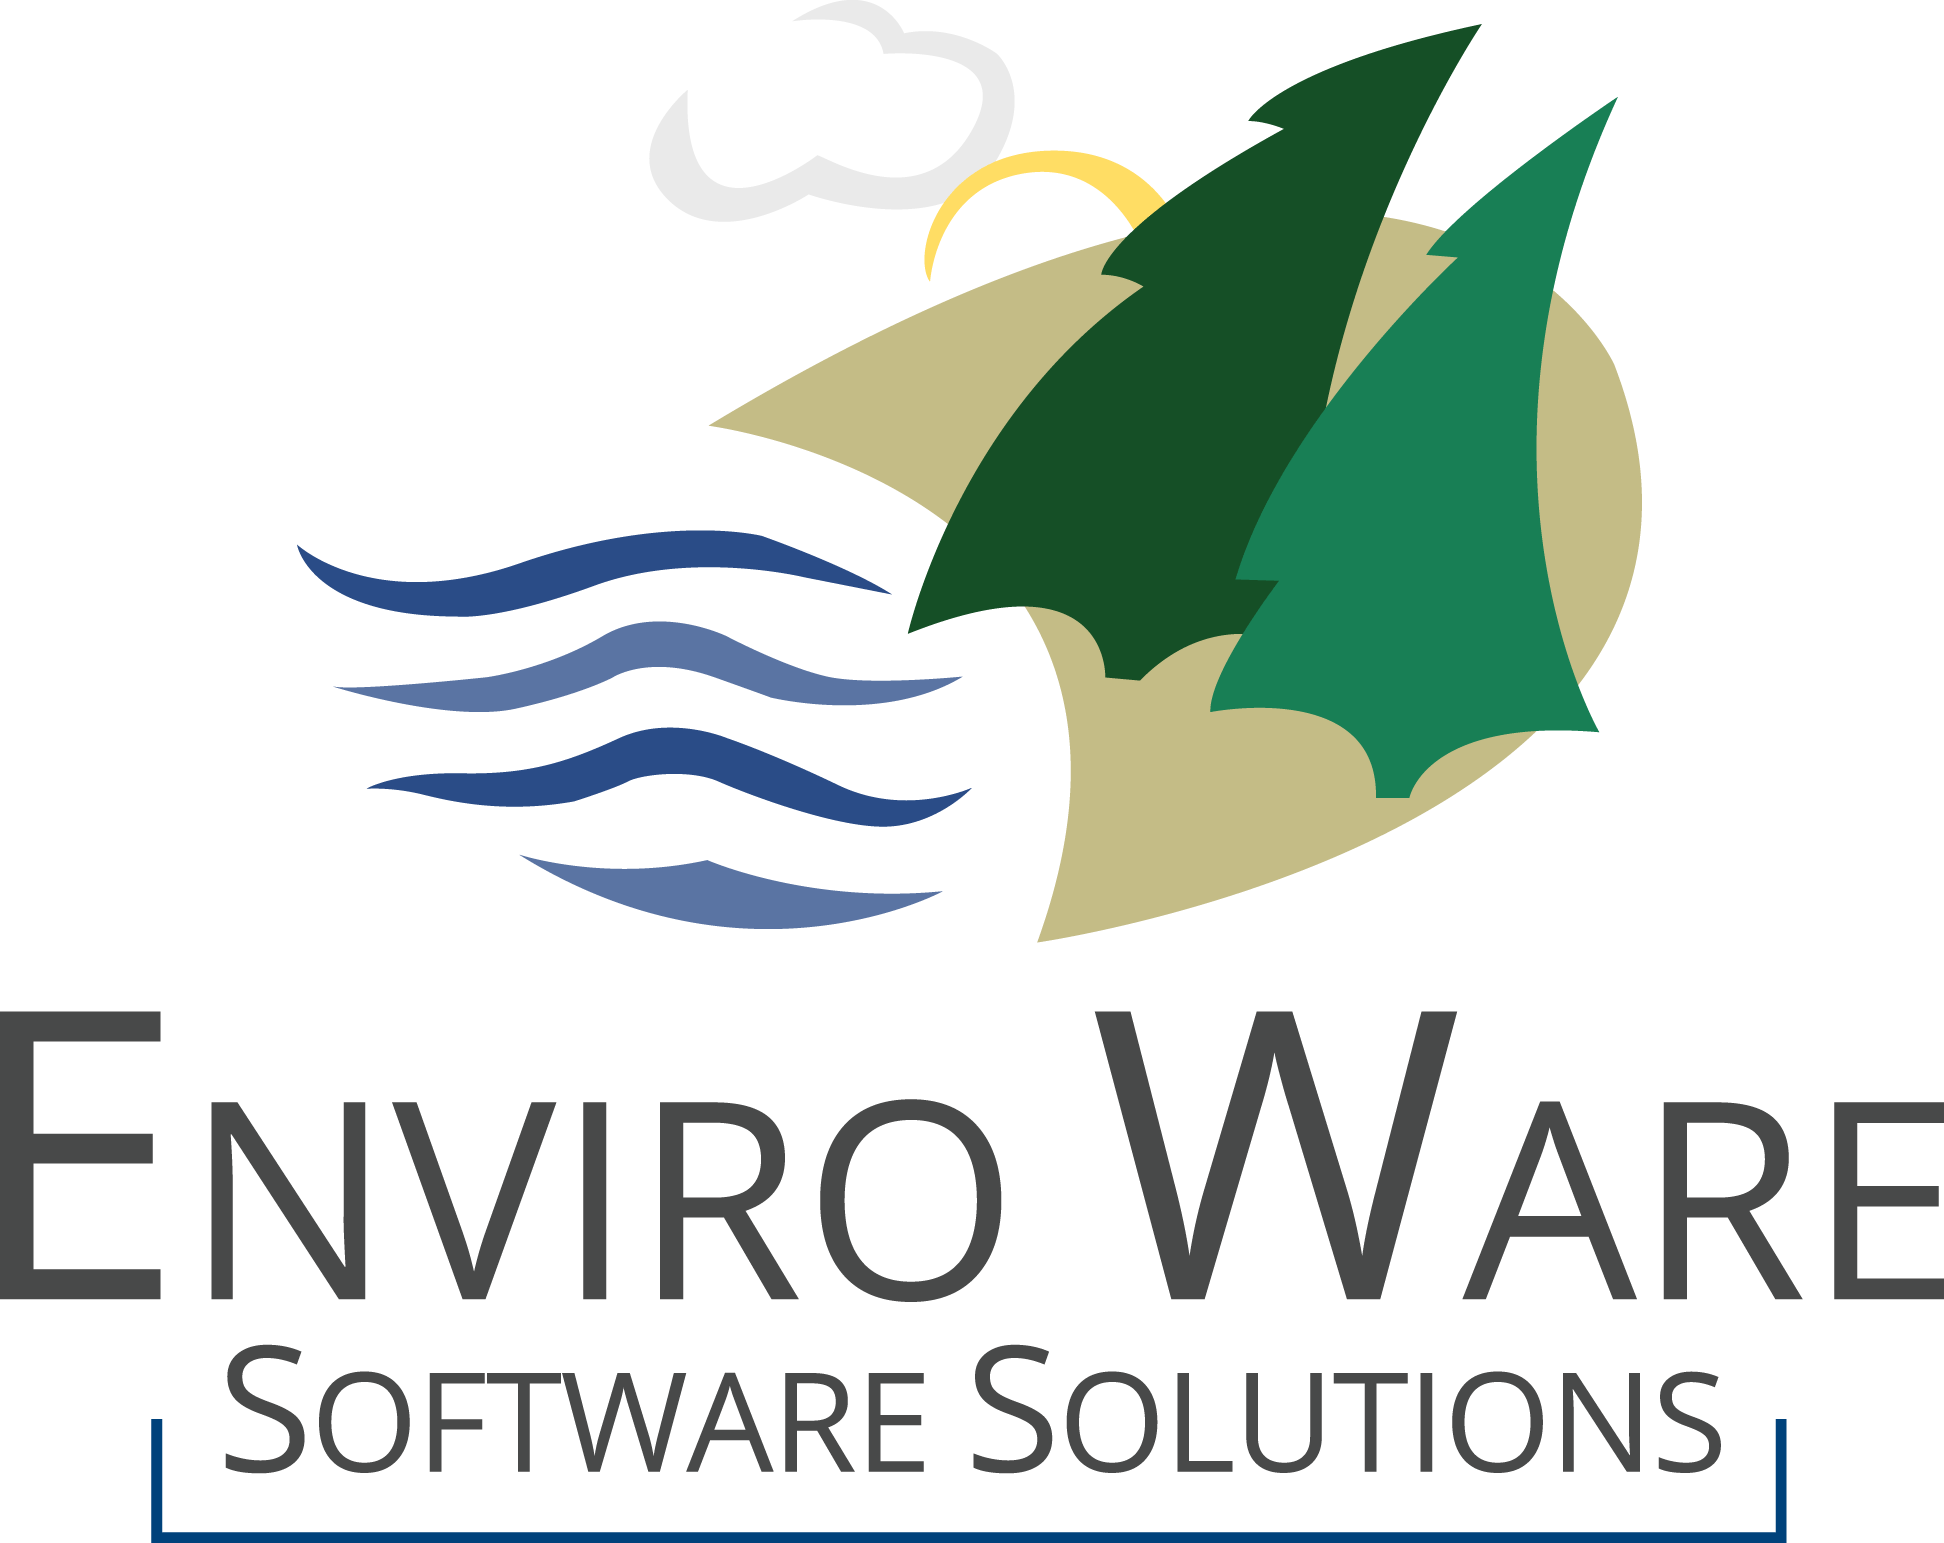 EnviroWare Software Solutions